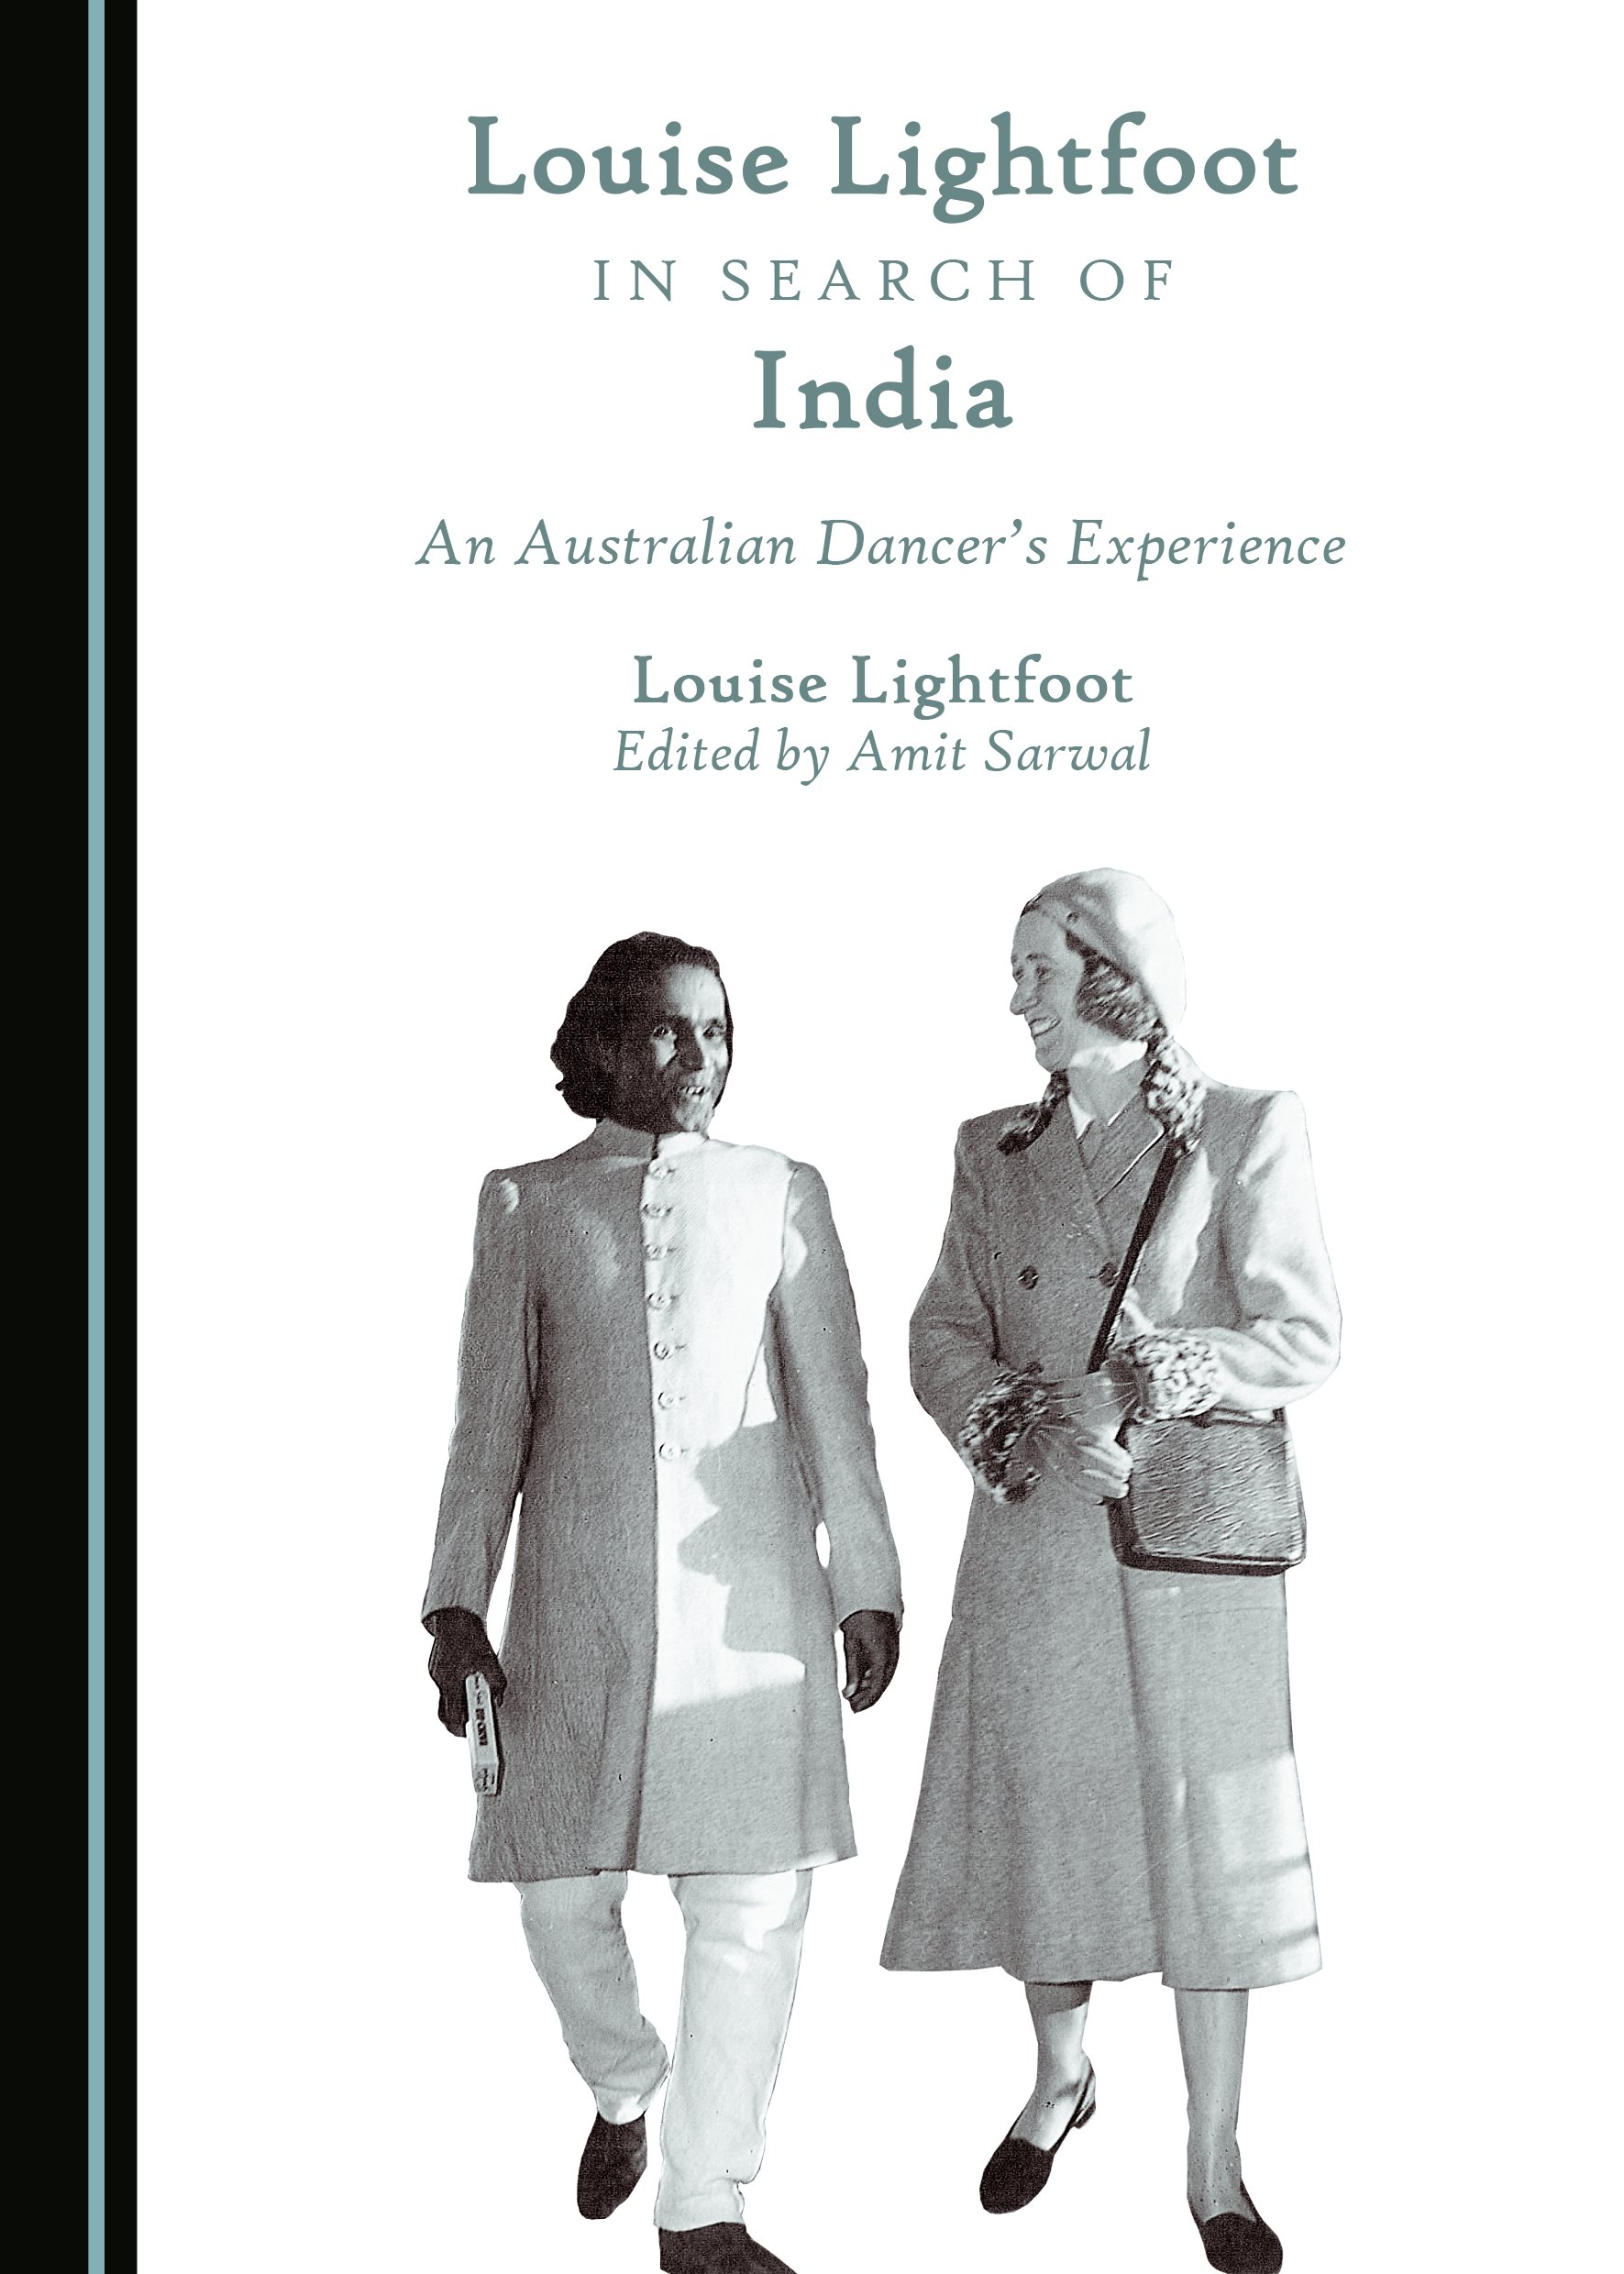 Louise Lightfoot in Search of India: An Australian Dancer's Experience